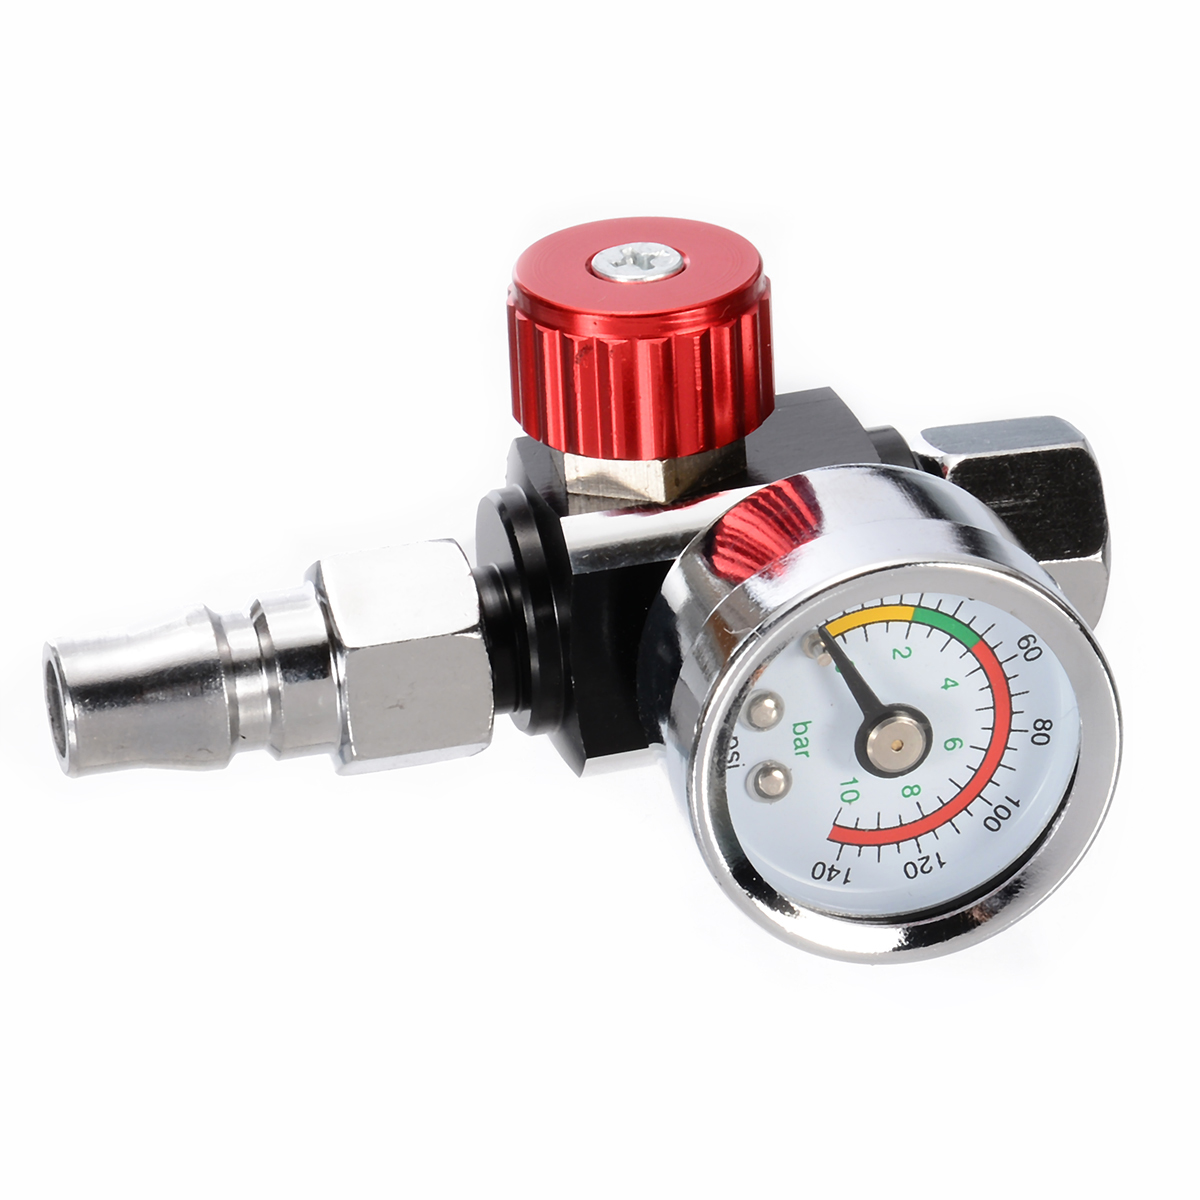 Outlet tube alloy air compressor switch pressure regulator valve fitting part S2